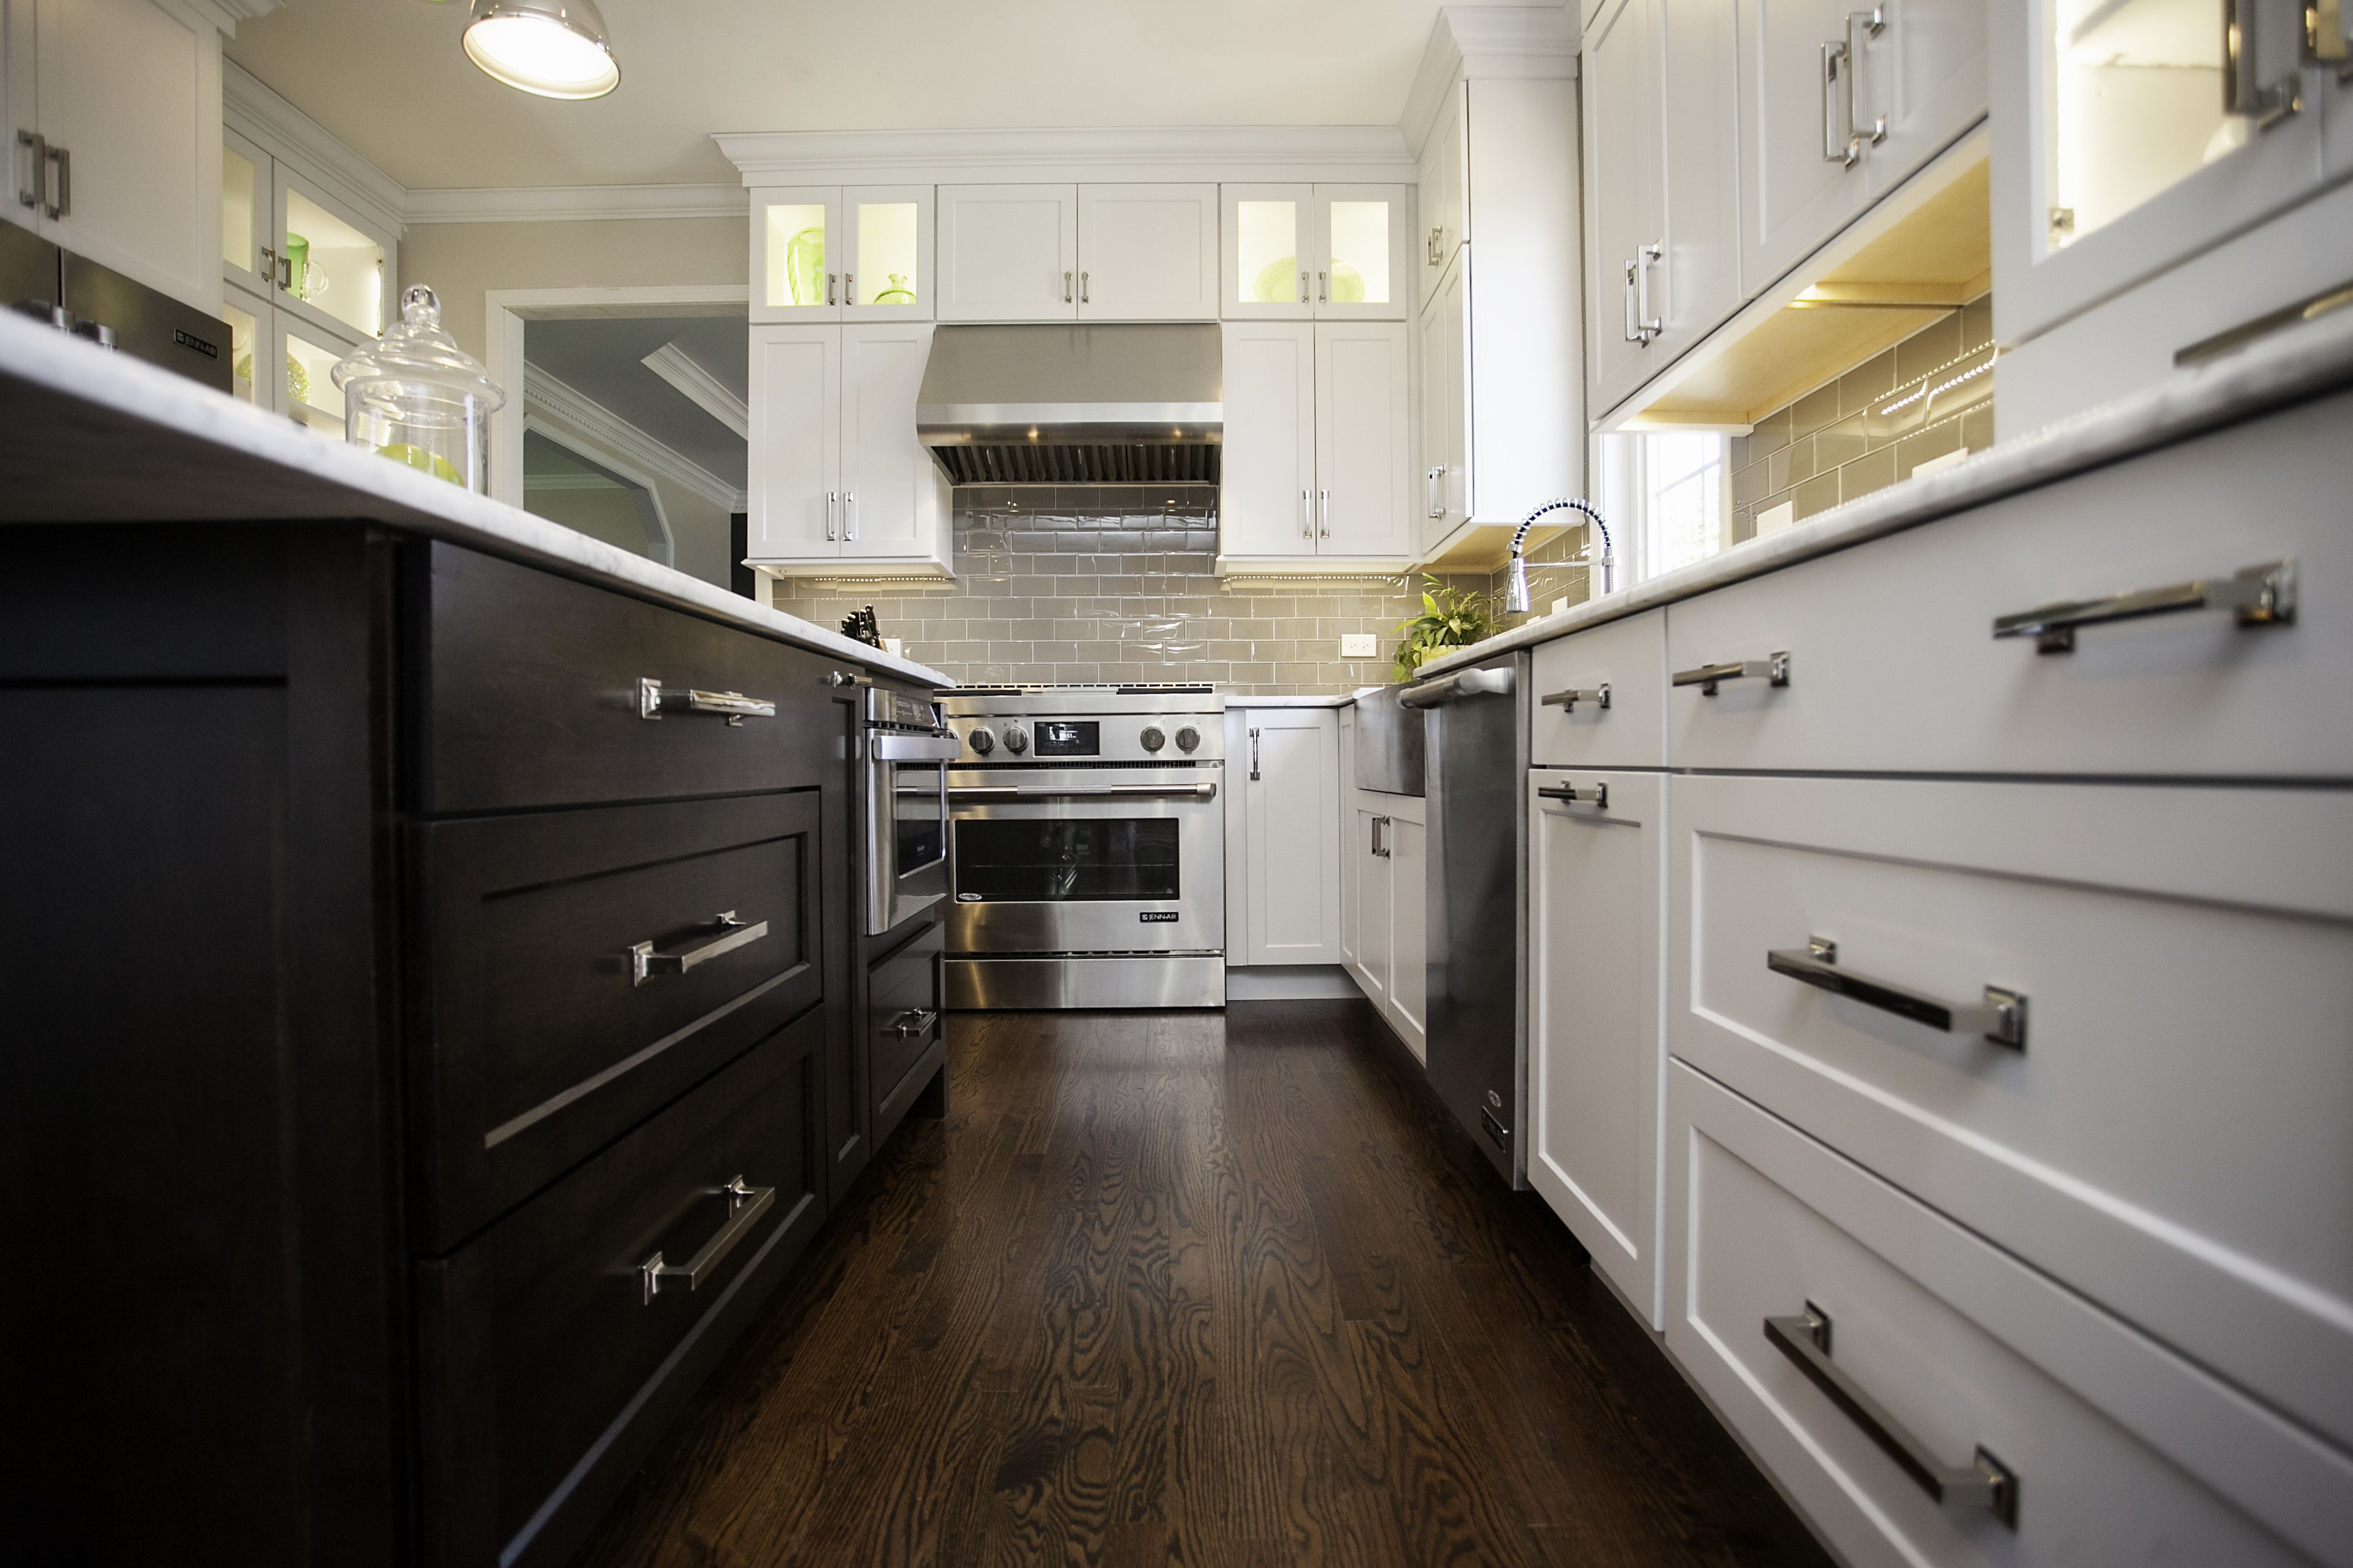 trend cabinet doors and base stunning with cabinets styles colorful drawers wallpaper sink picture inspiring files kitchen for